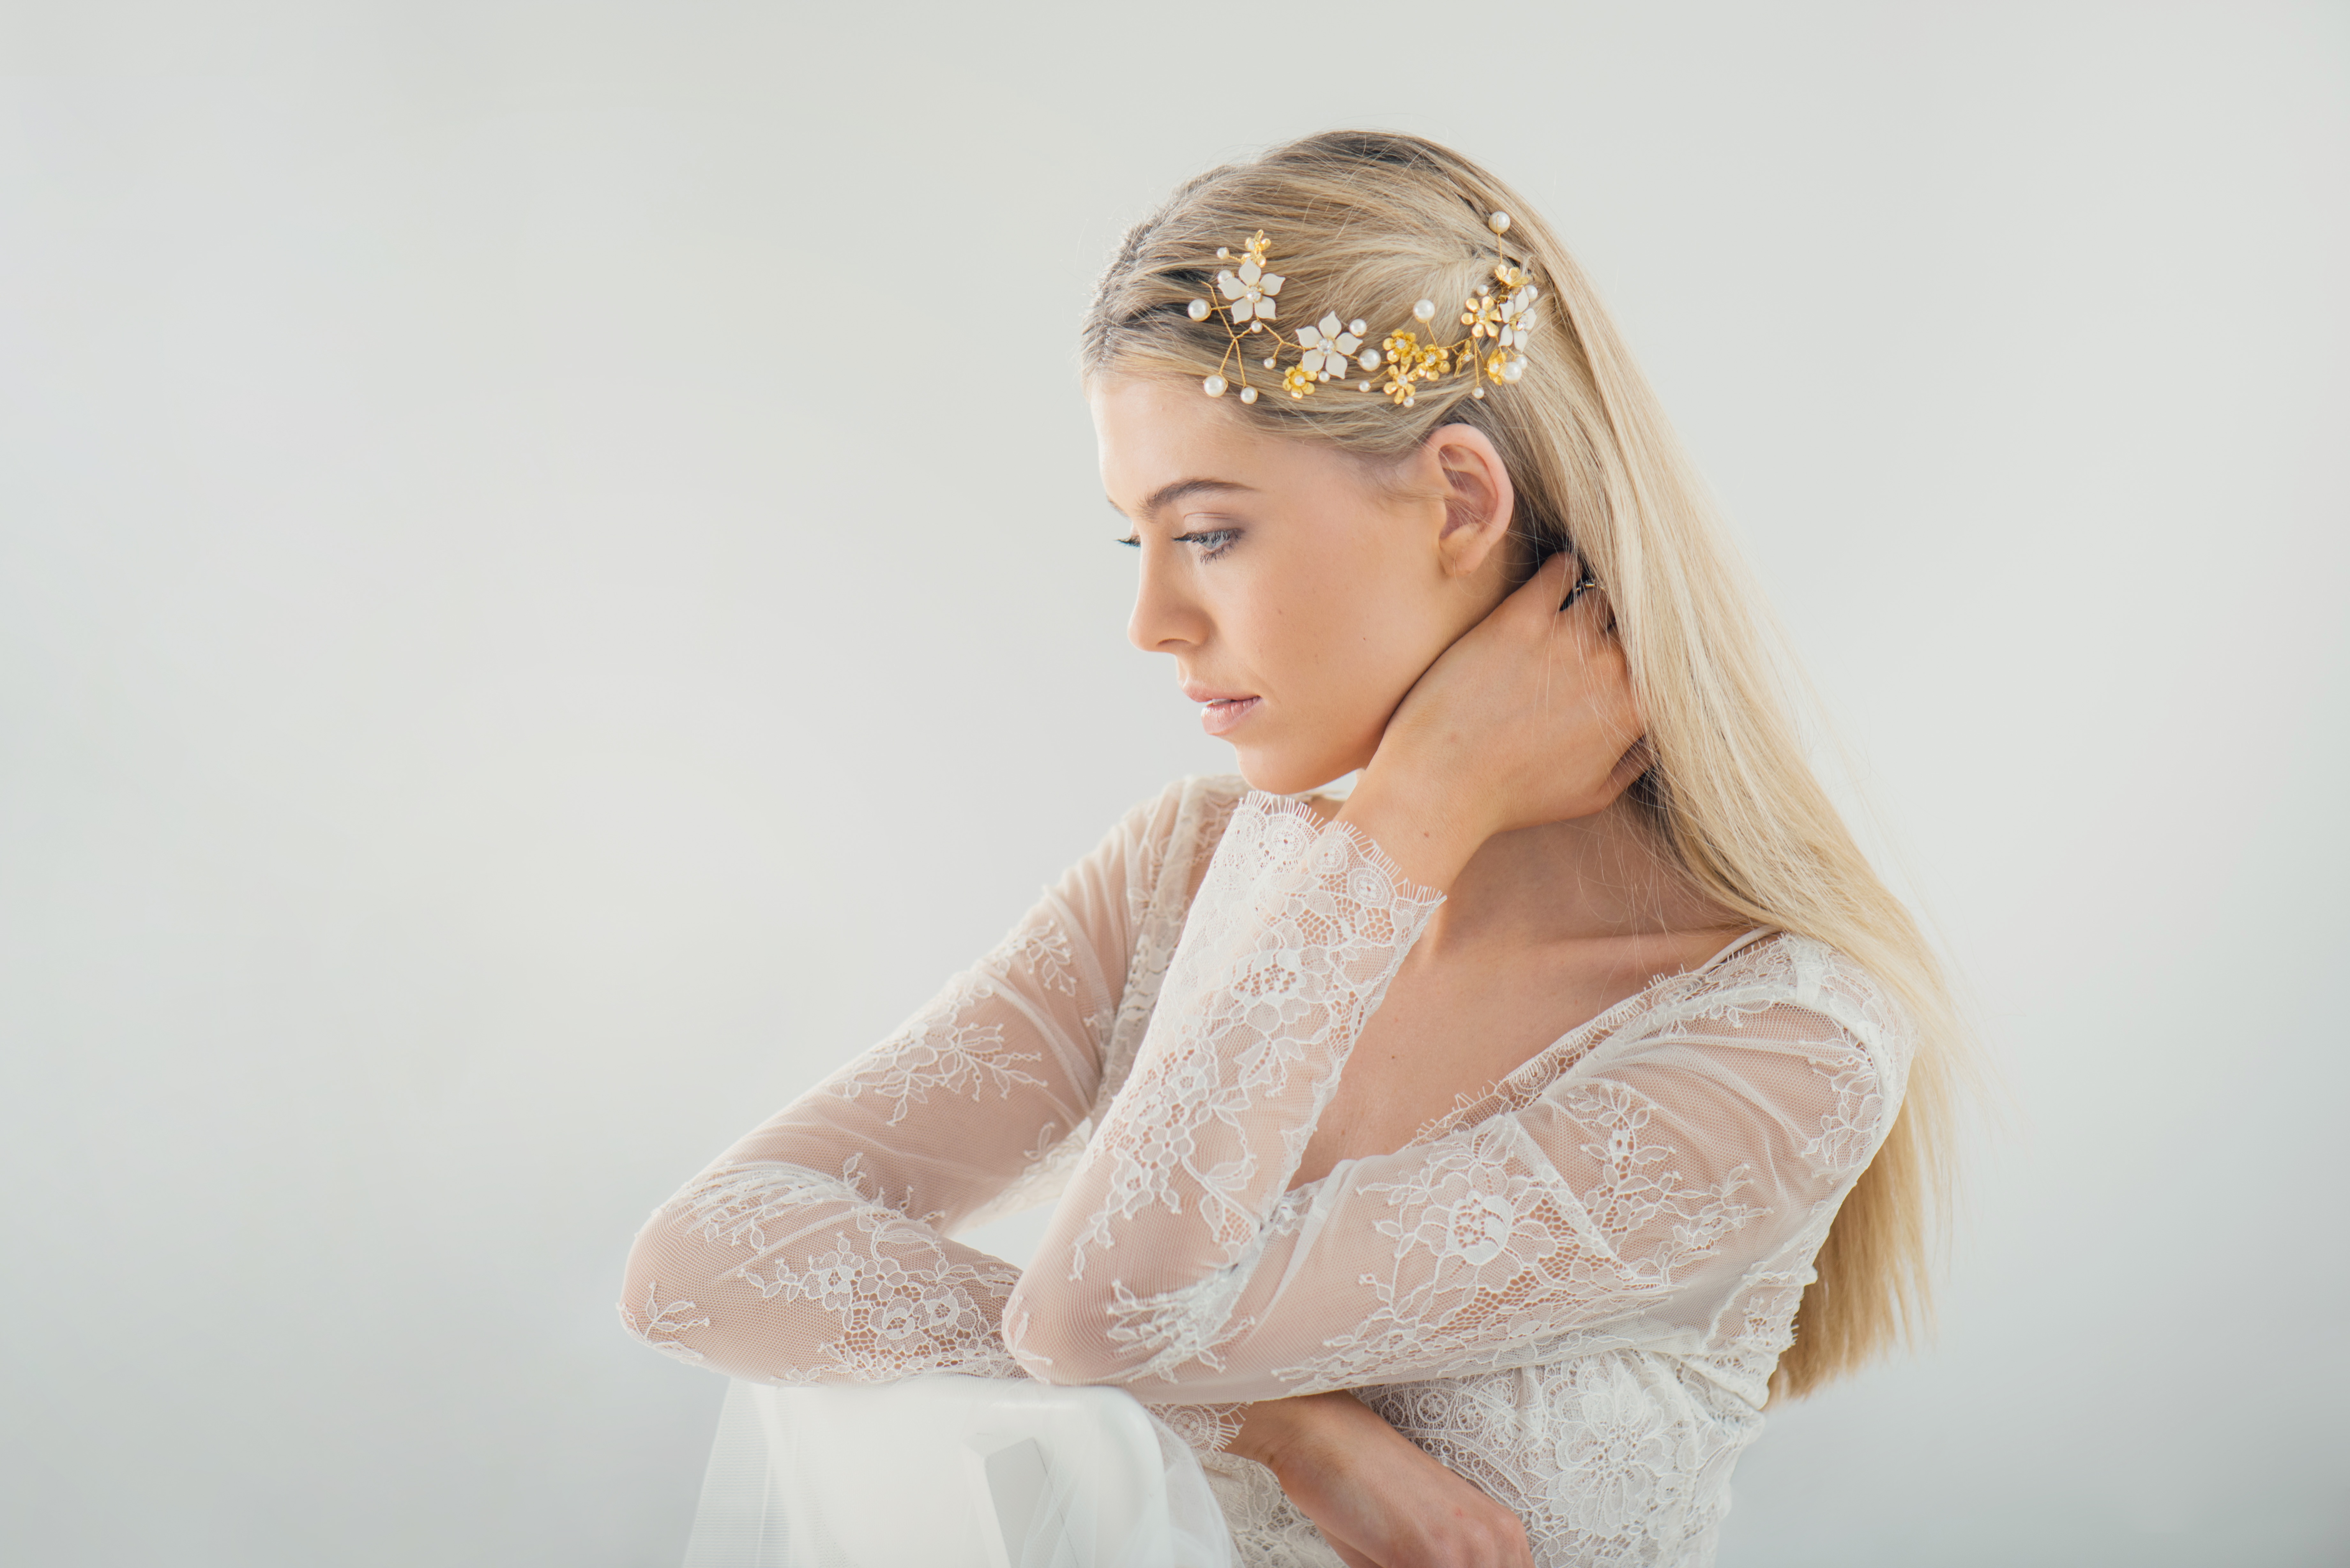 Bridal Accessories From Liberty In Love